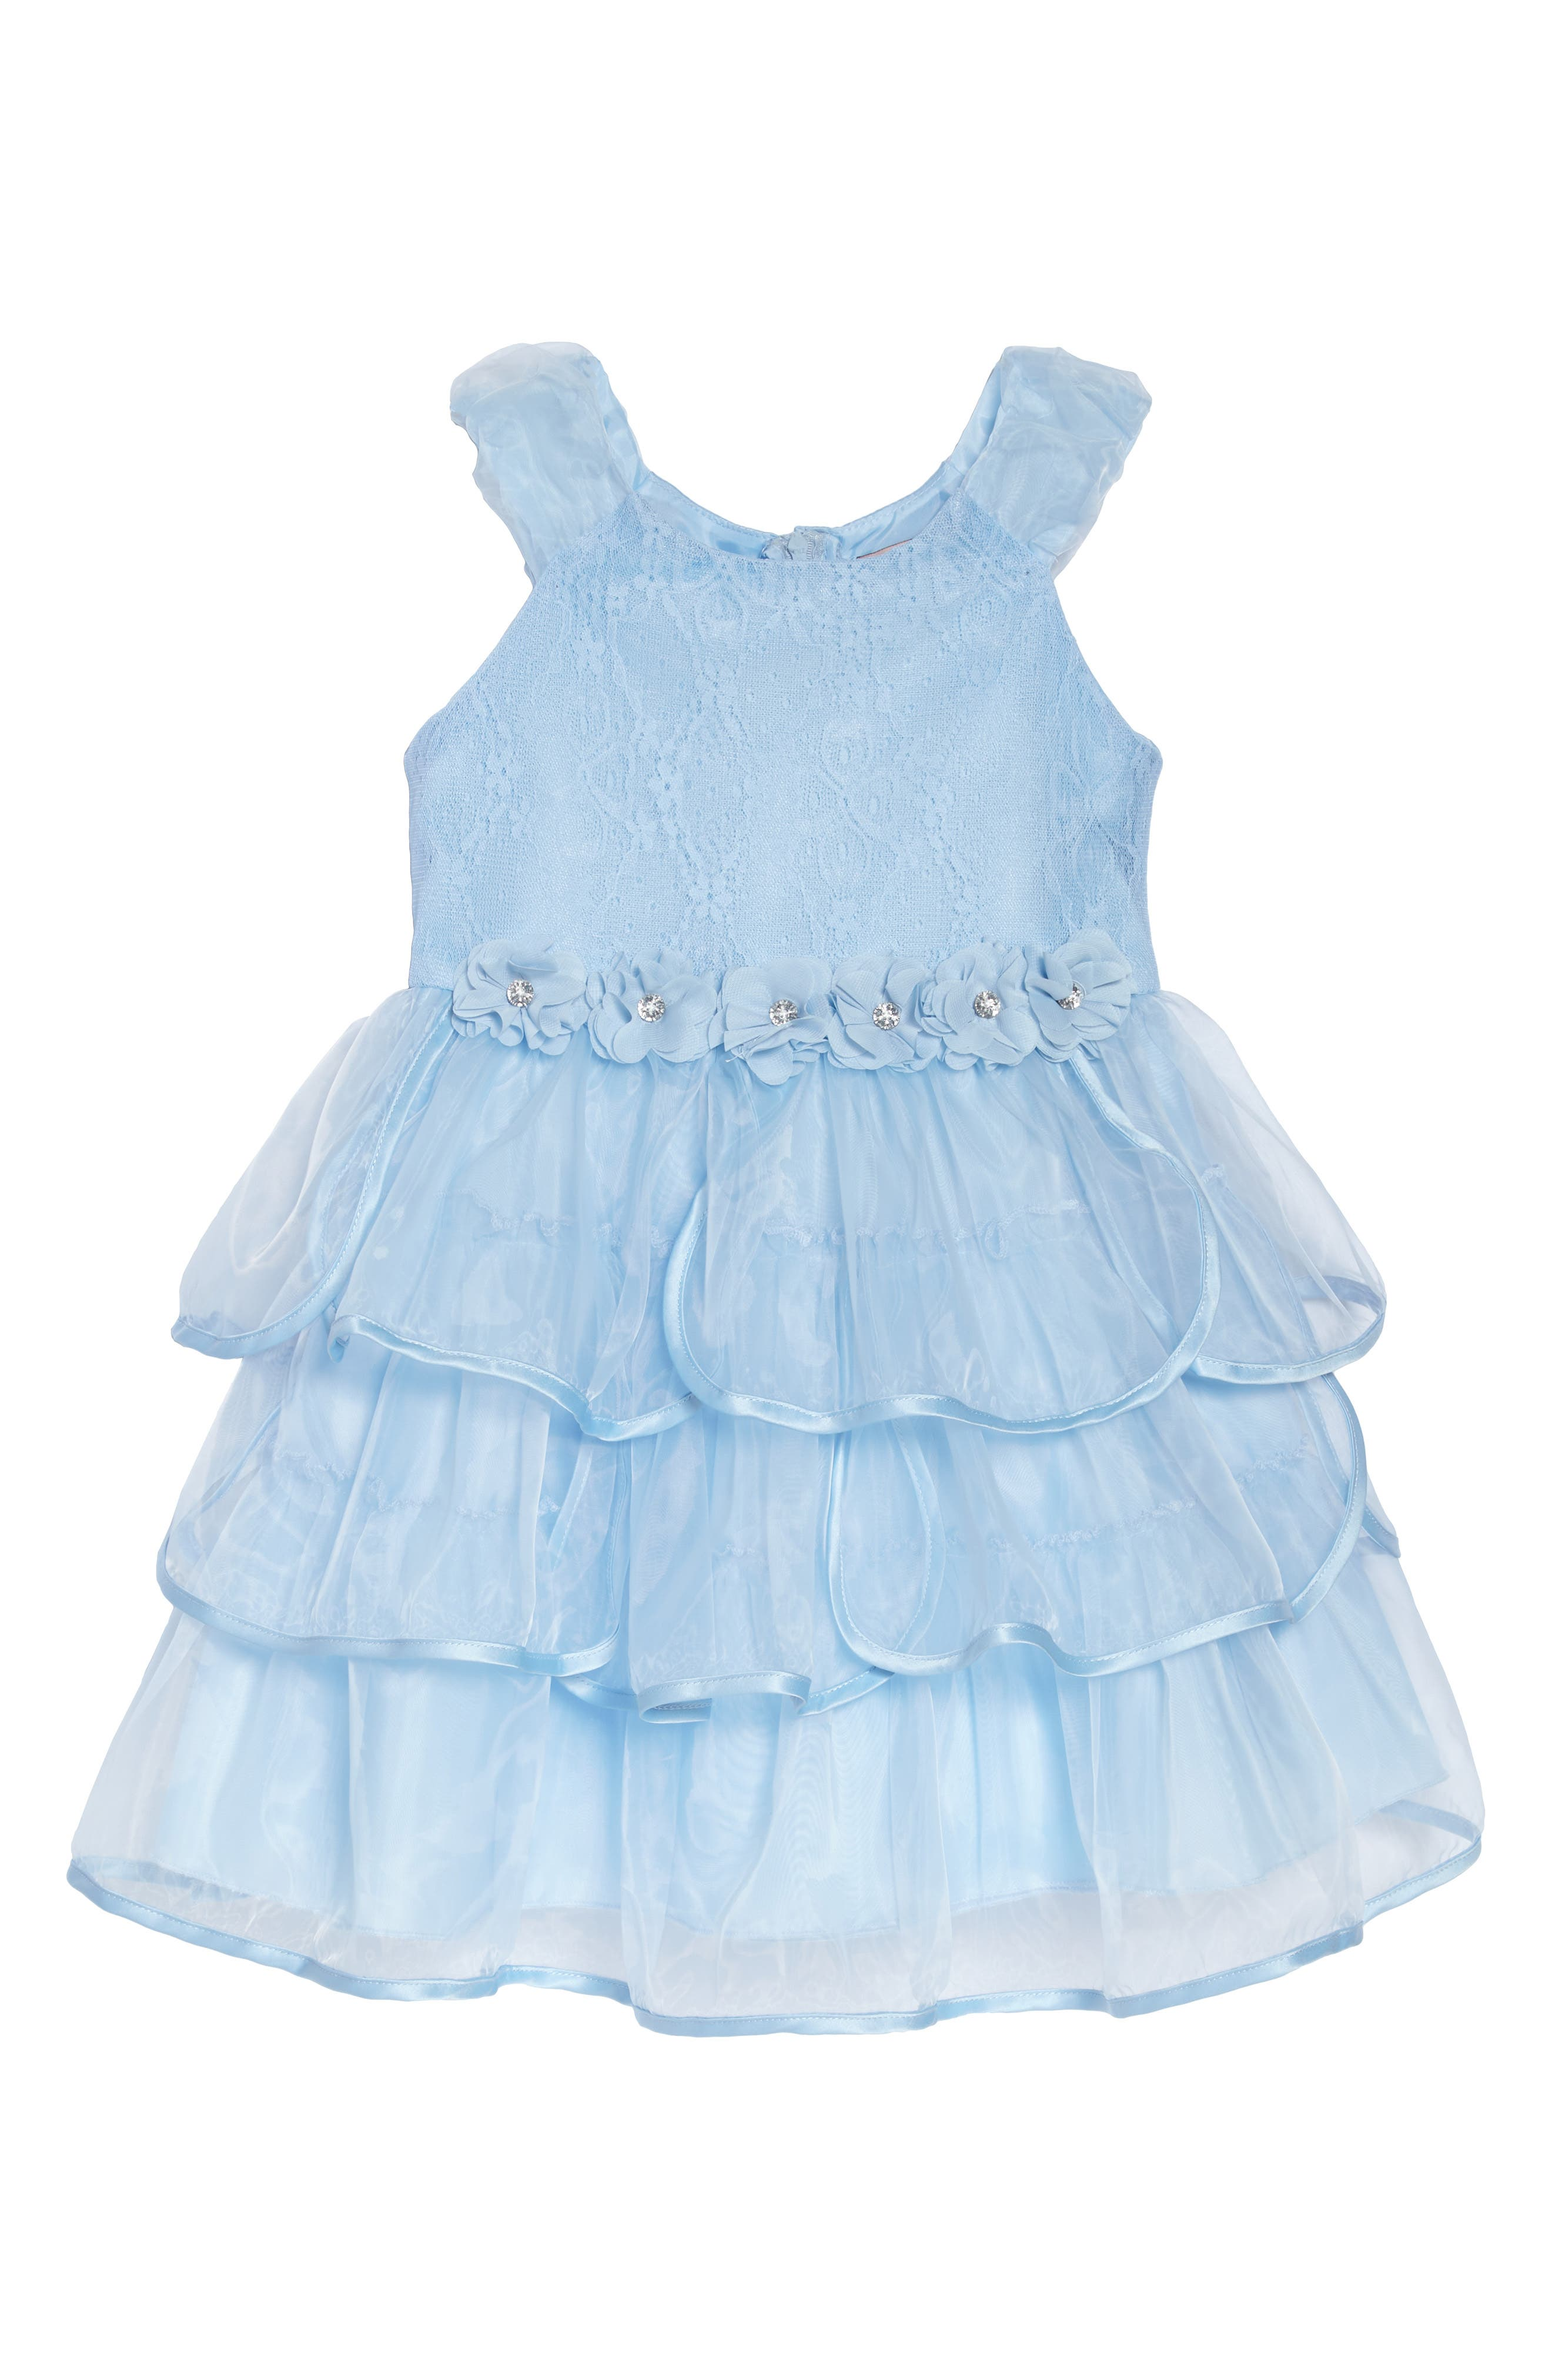 Tiered Organza Party Dress,                         Main,                         color, Light Blue